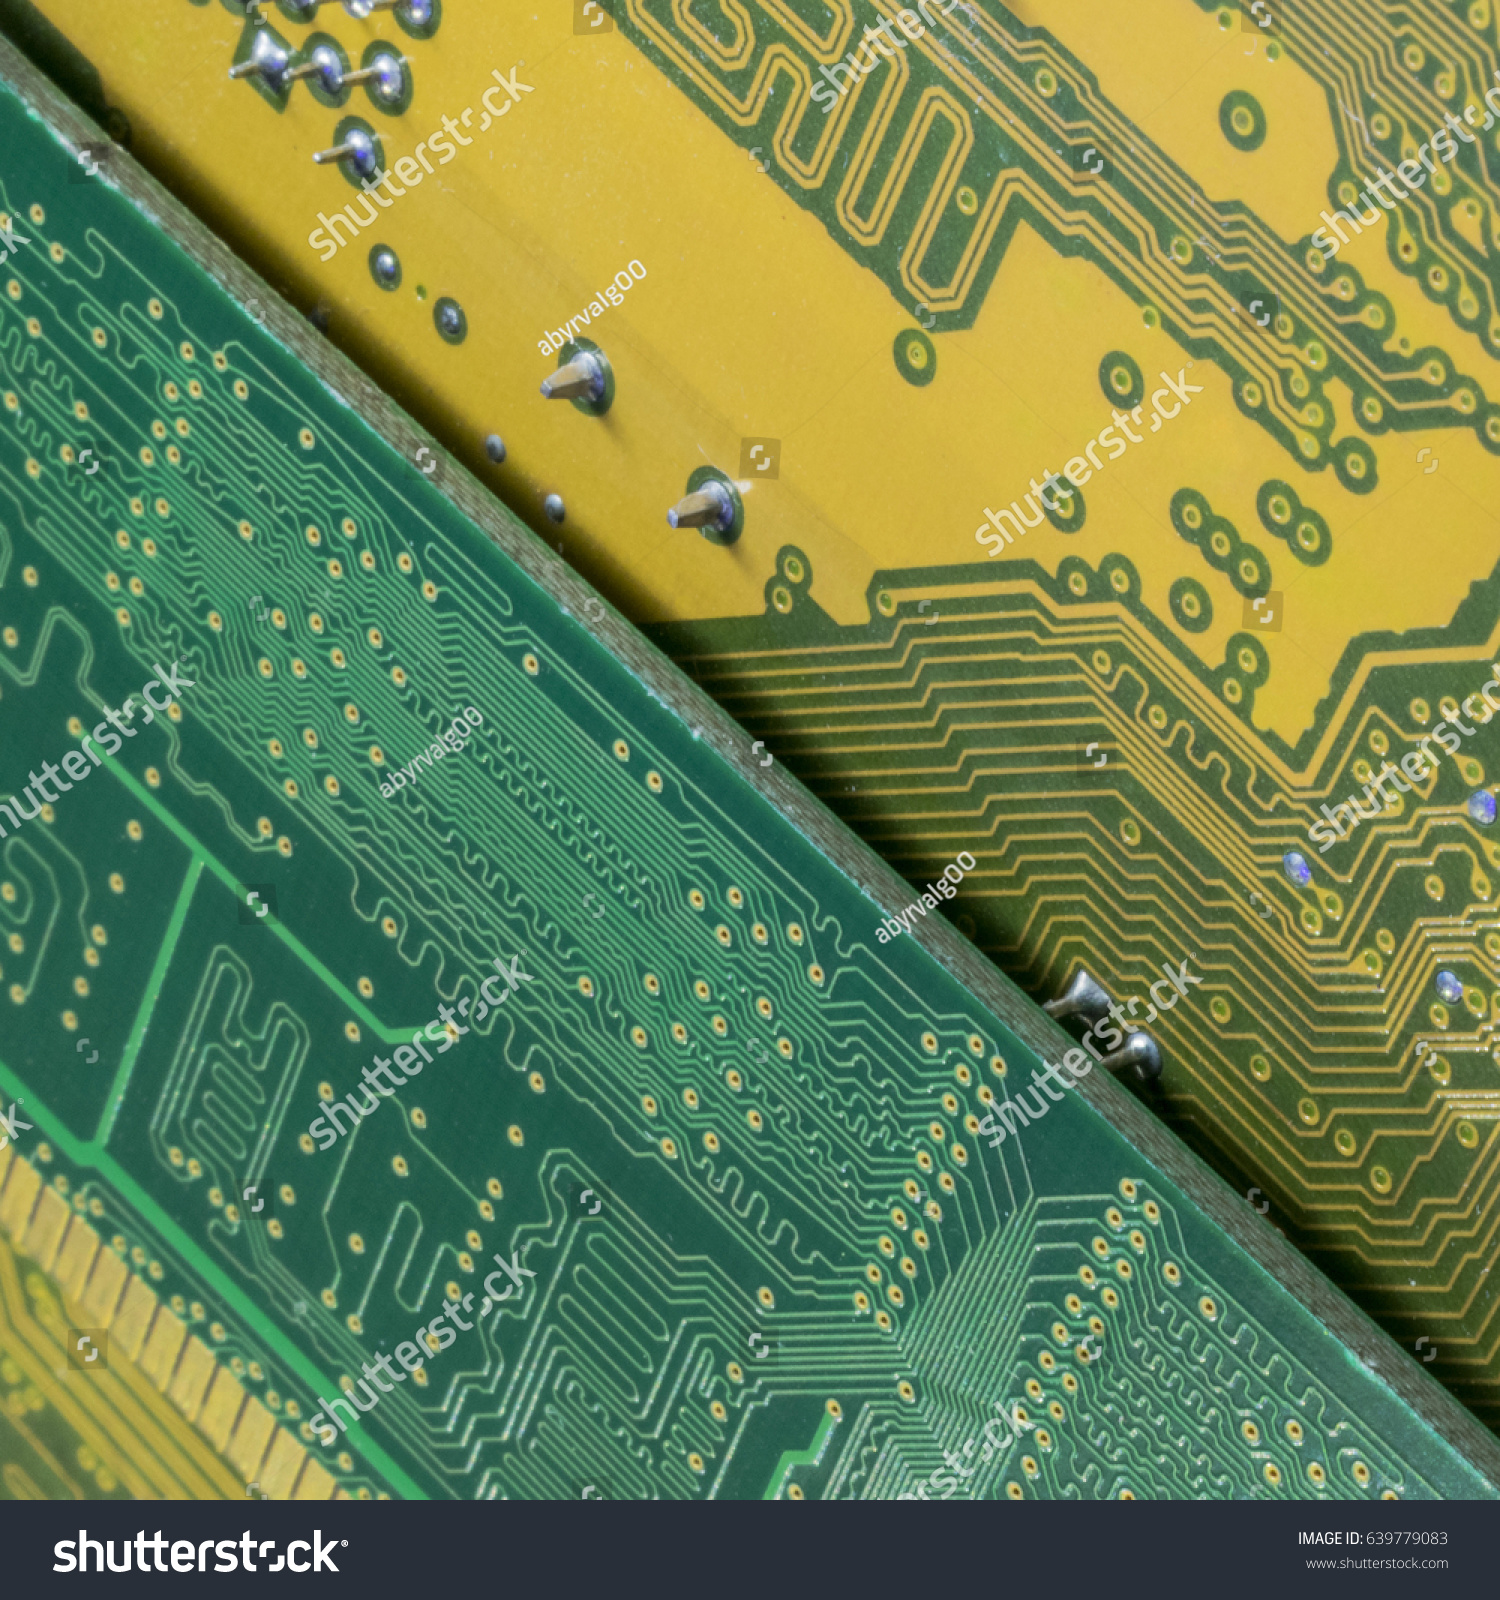 Computer Circuit Board Green Yellow Colors Stock Photo Edit Now With Electronics Components And In Technical Science Background Information